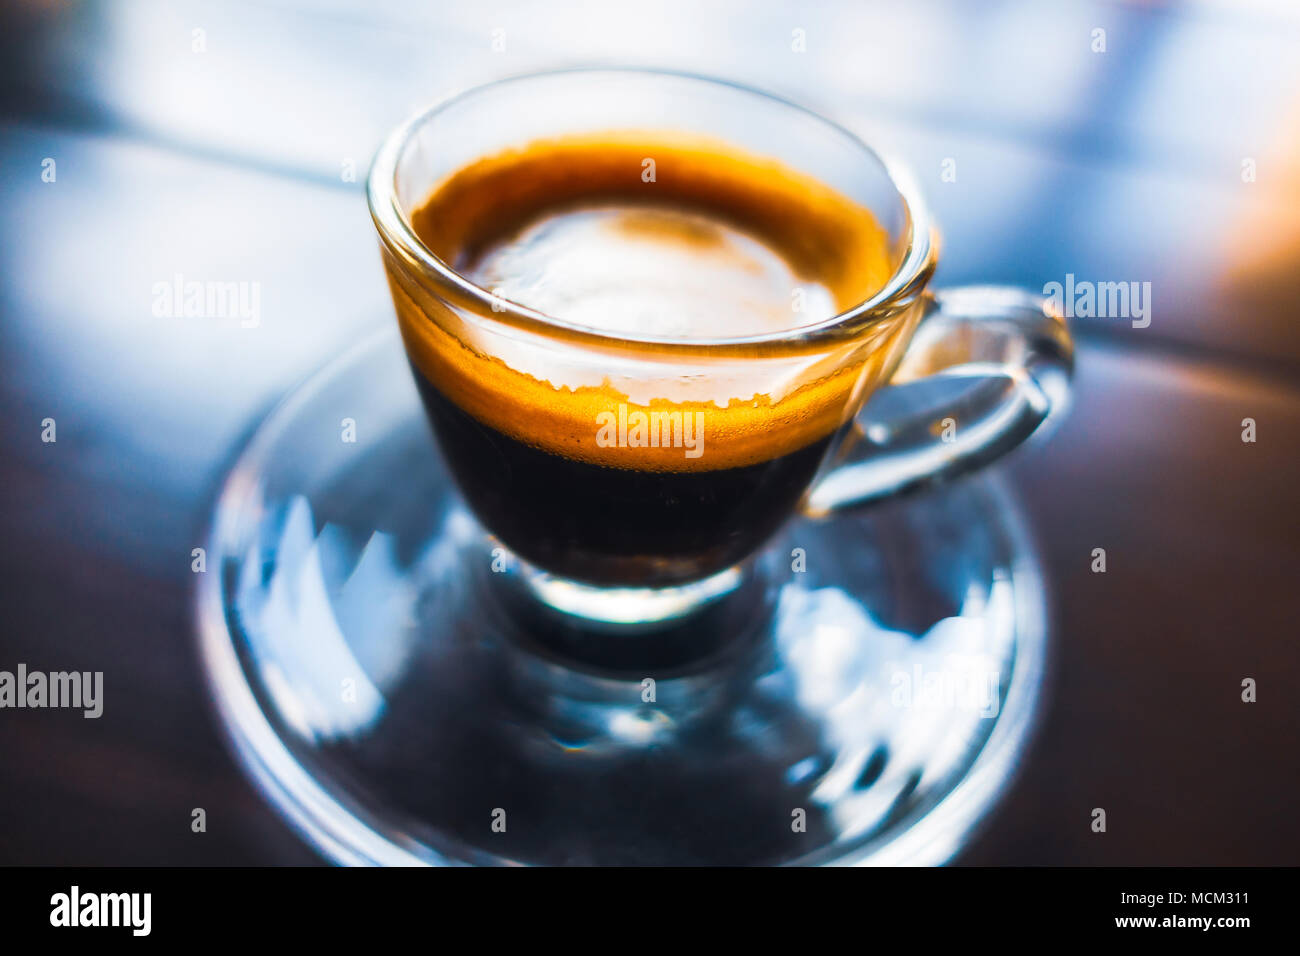 Espresso coffee in glass cup on wooden table, colorful reflections and shallow depth of field. - Stock Image